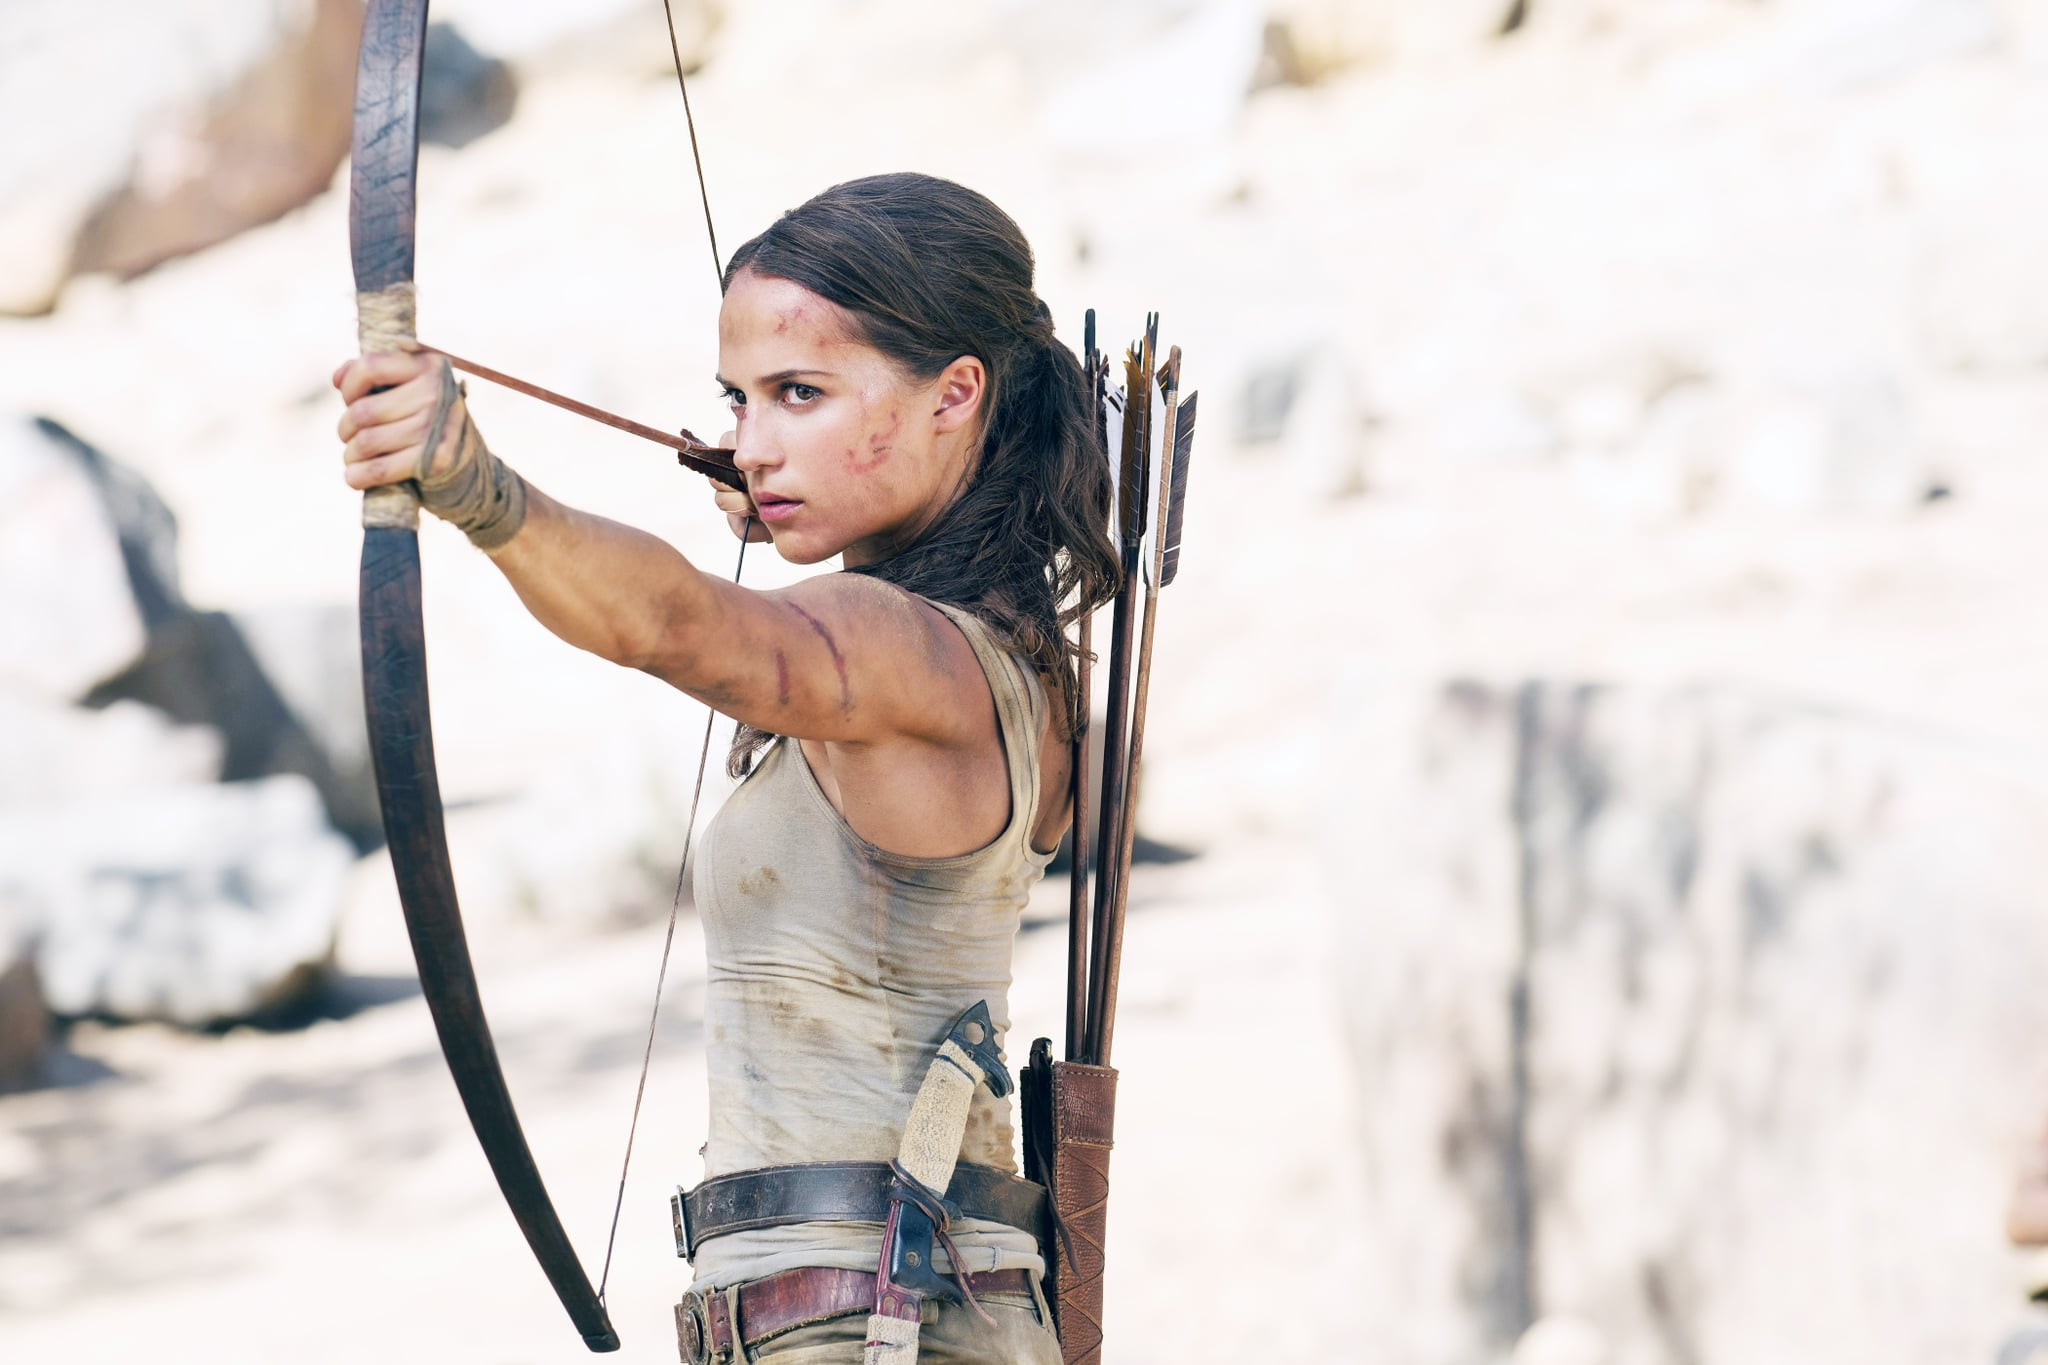 TOMB RAIDER, Alicia Vikander, 2018. ph: Ilzek Kitshoff. Warner Bros./courtesy Everett Collection